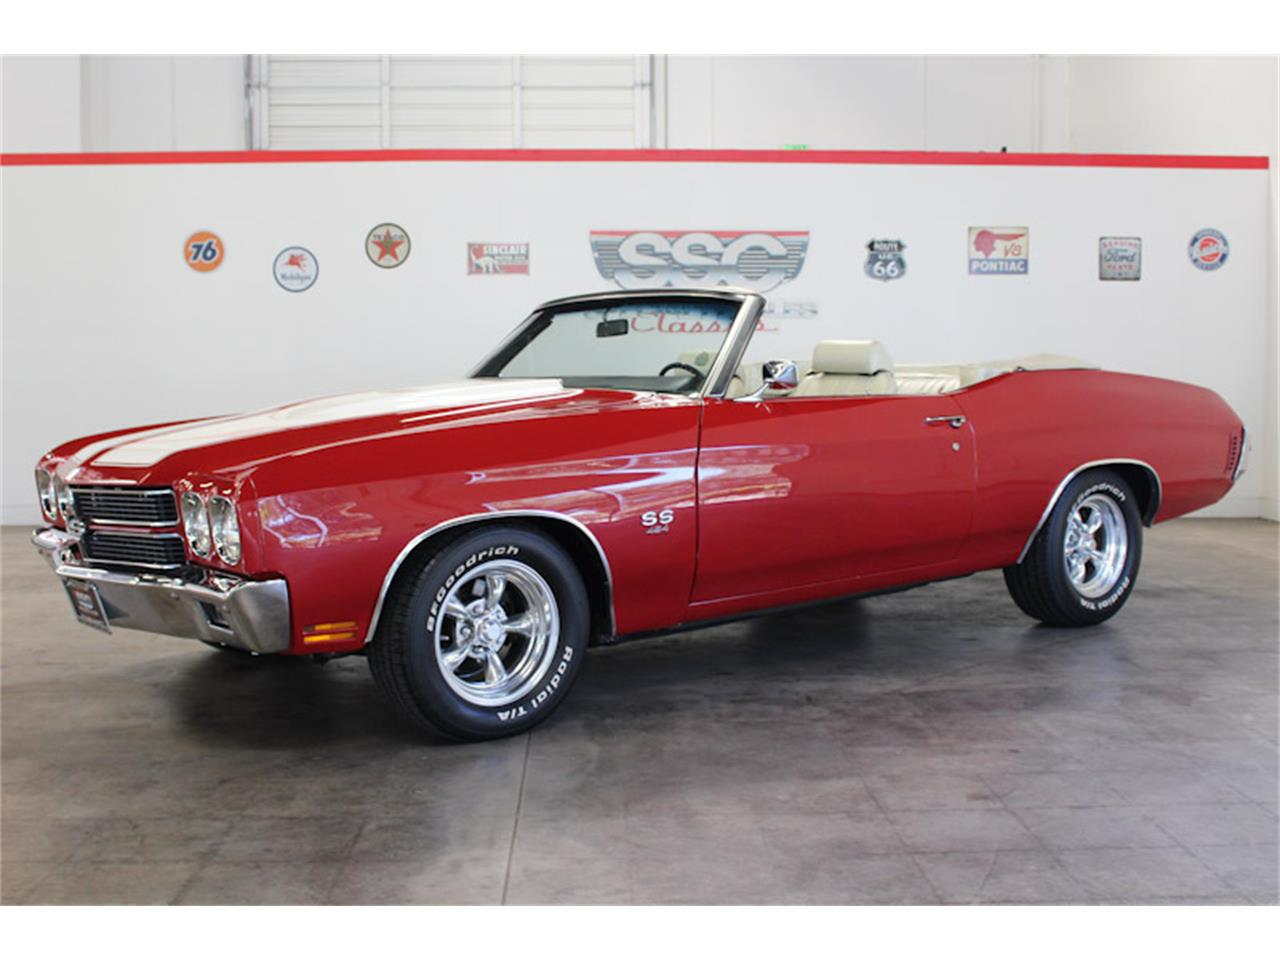 1970 Chevrolet Chevelle (CC-1420777) for sale in Fairfield, California